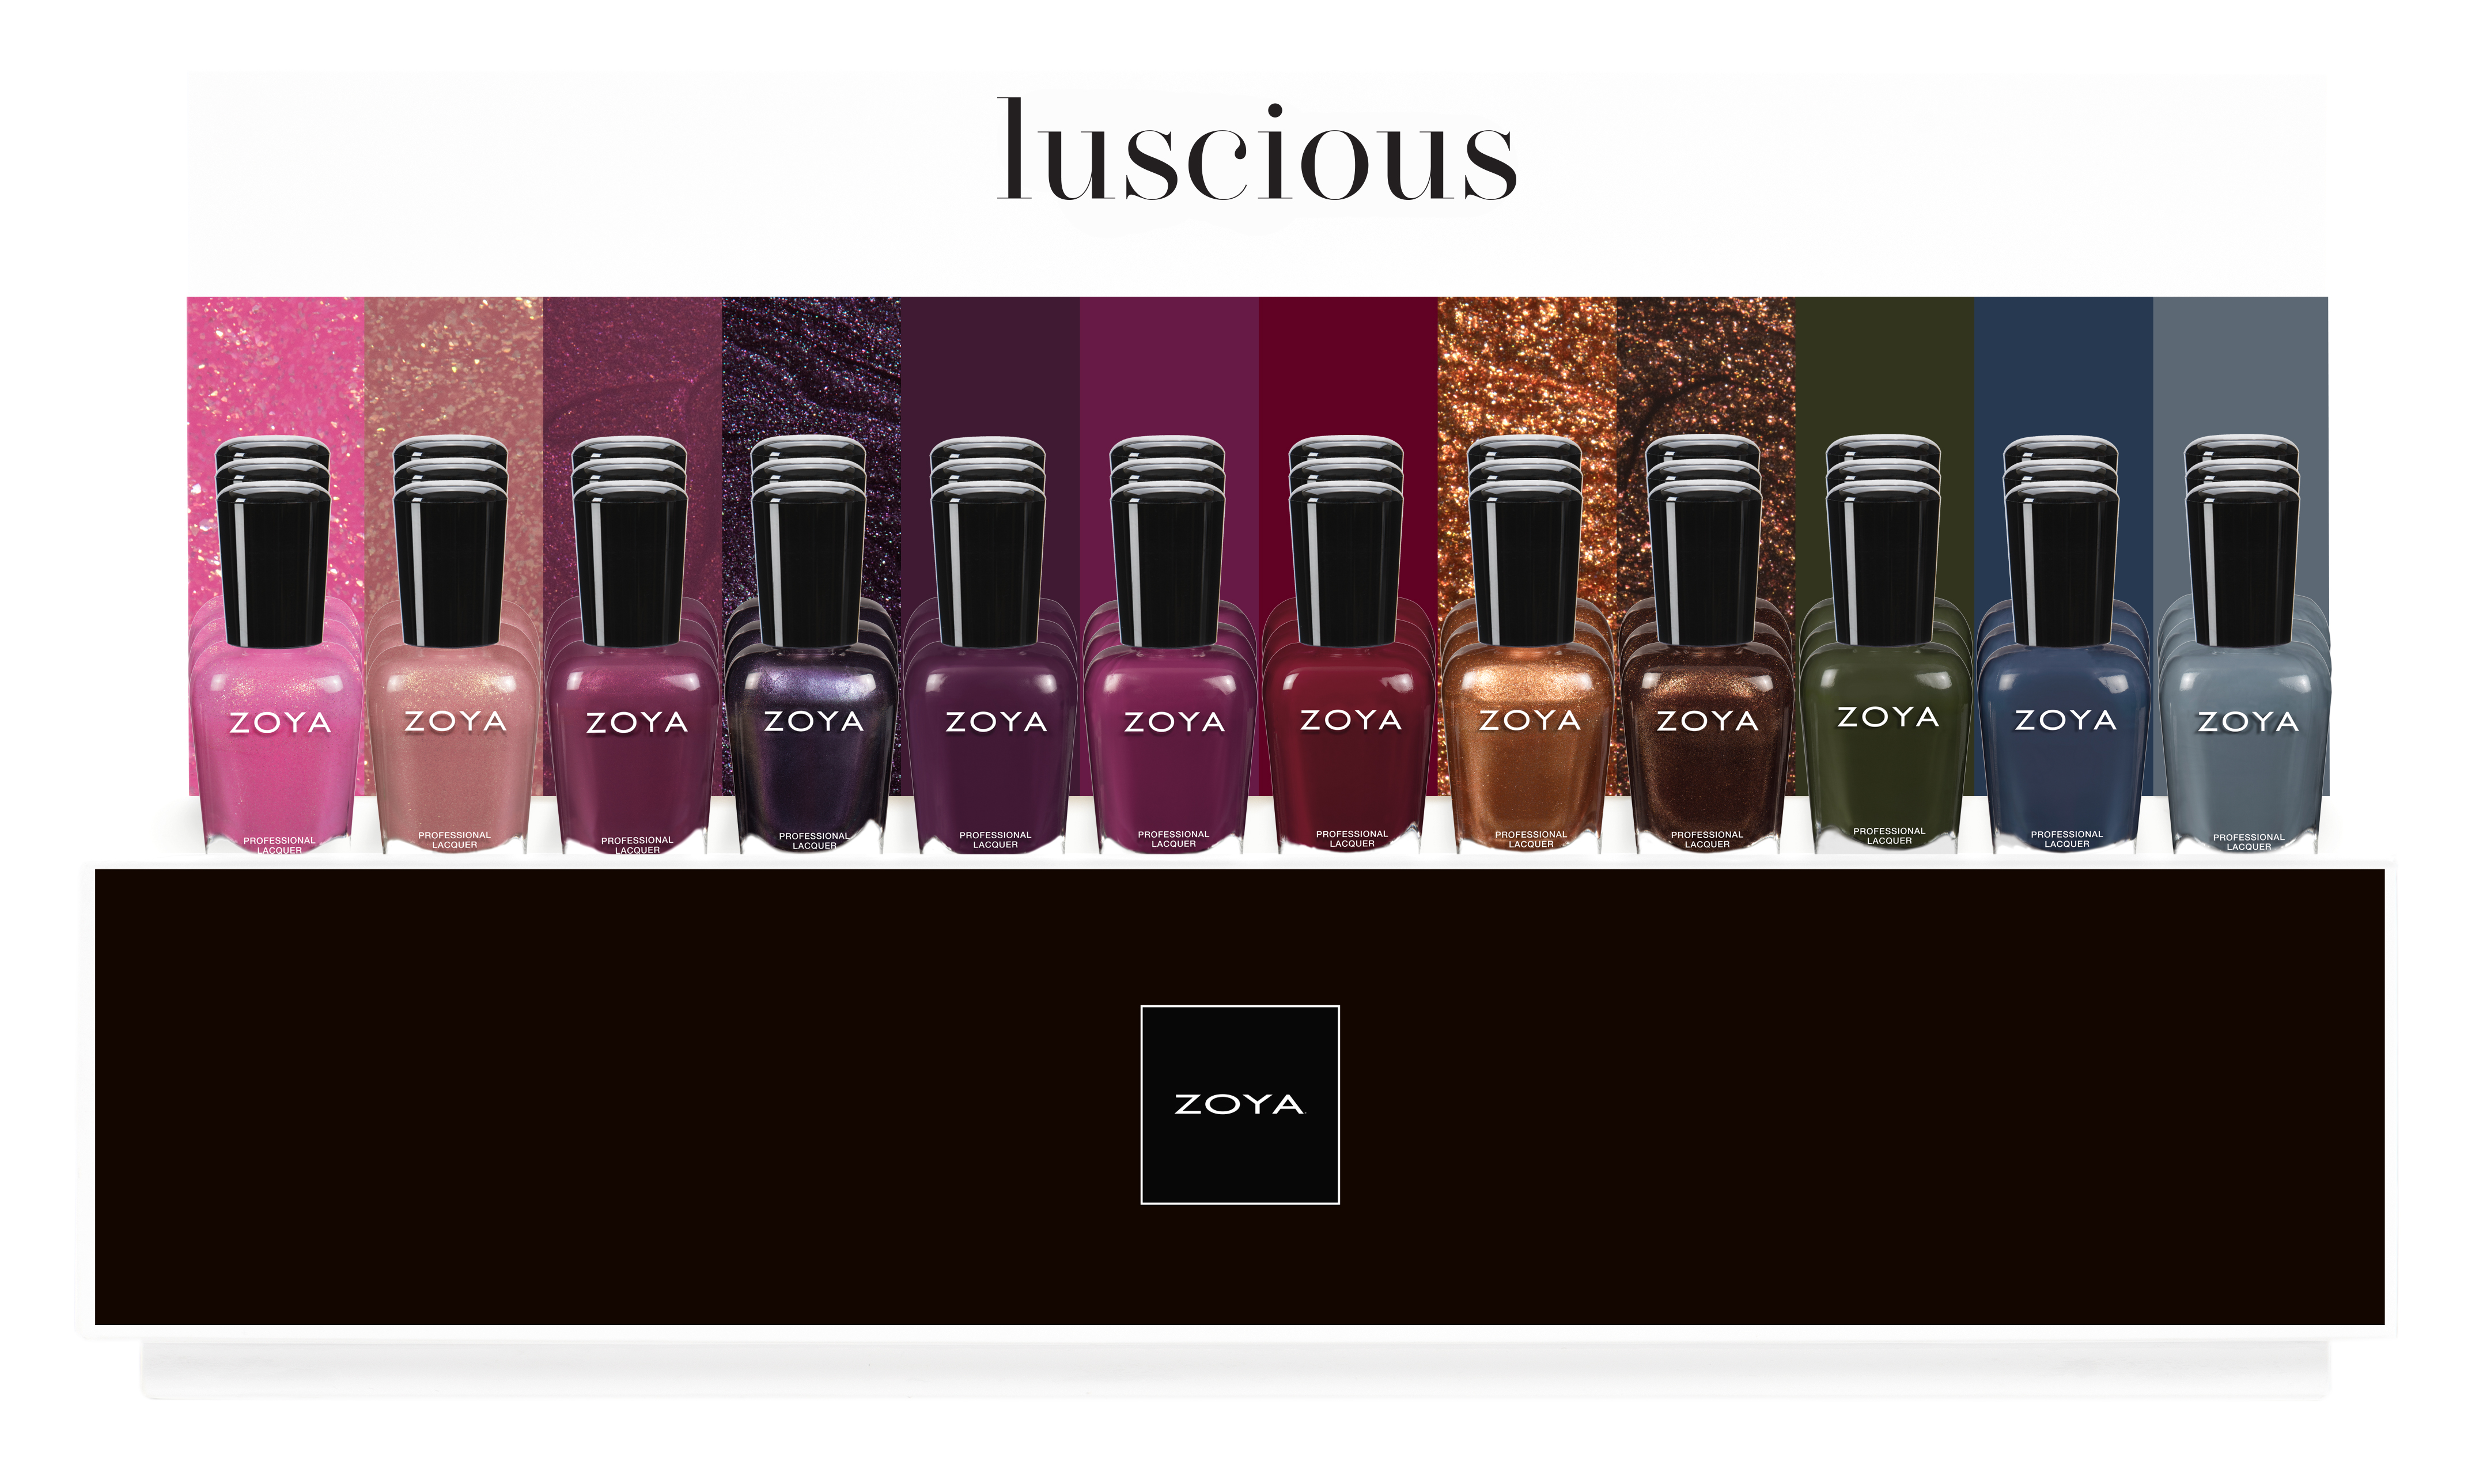 zoya luscious 24 pc display